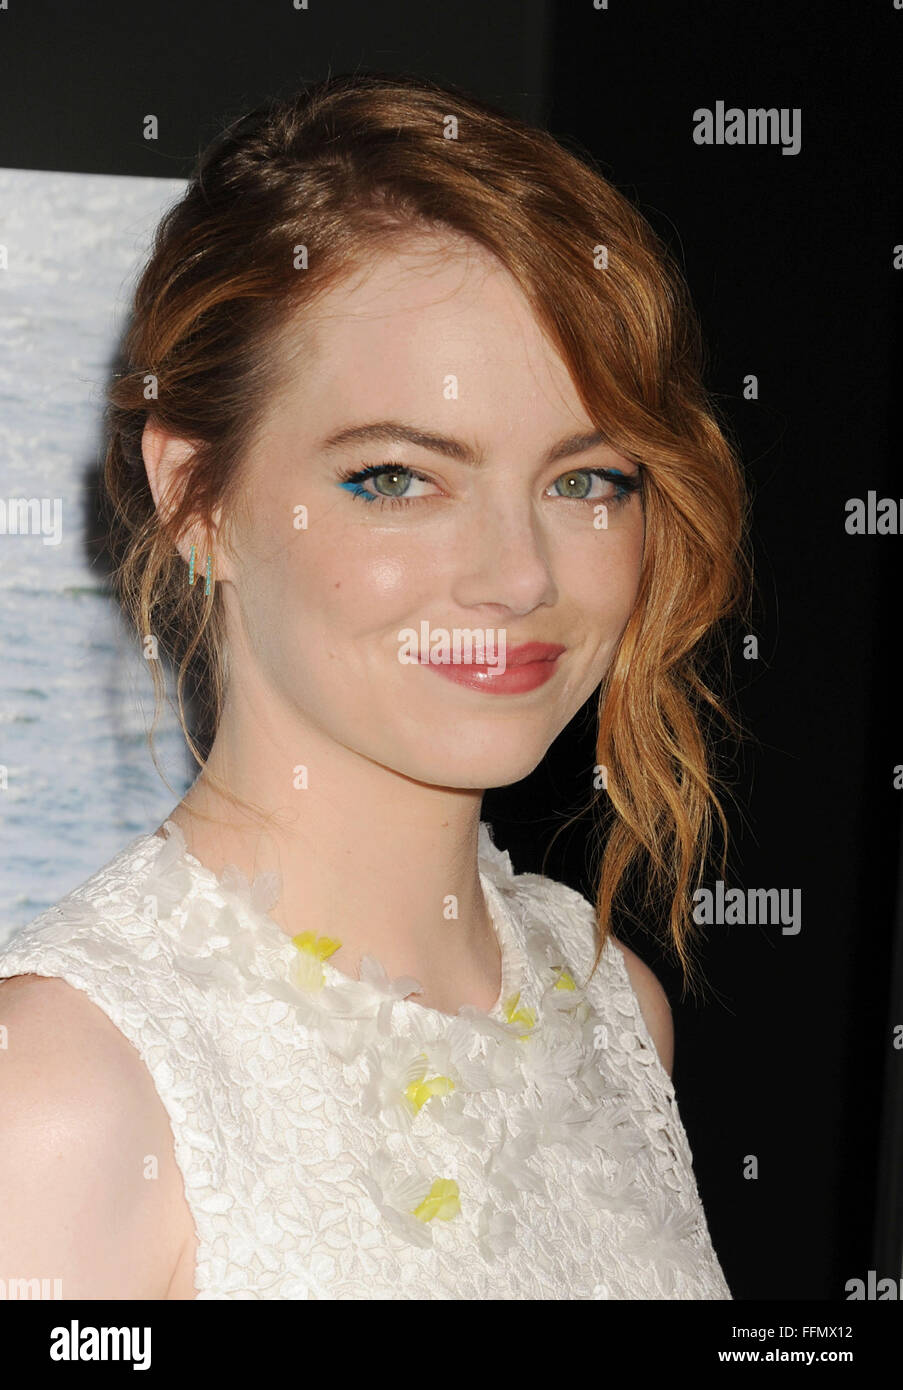 Actress Emma Stone arrives at the Premiere Of Sony Pictures Classics' 'Irrational Man' at the WGA Theatre - Stock Image